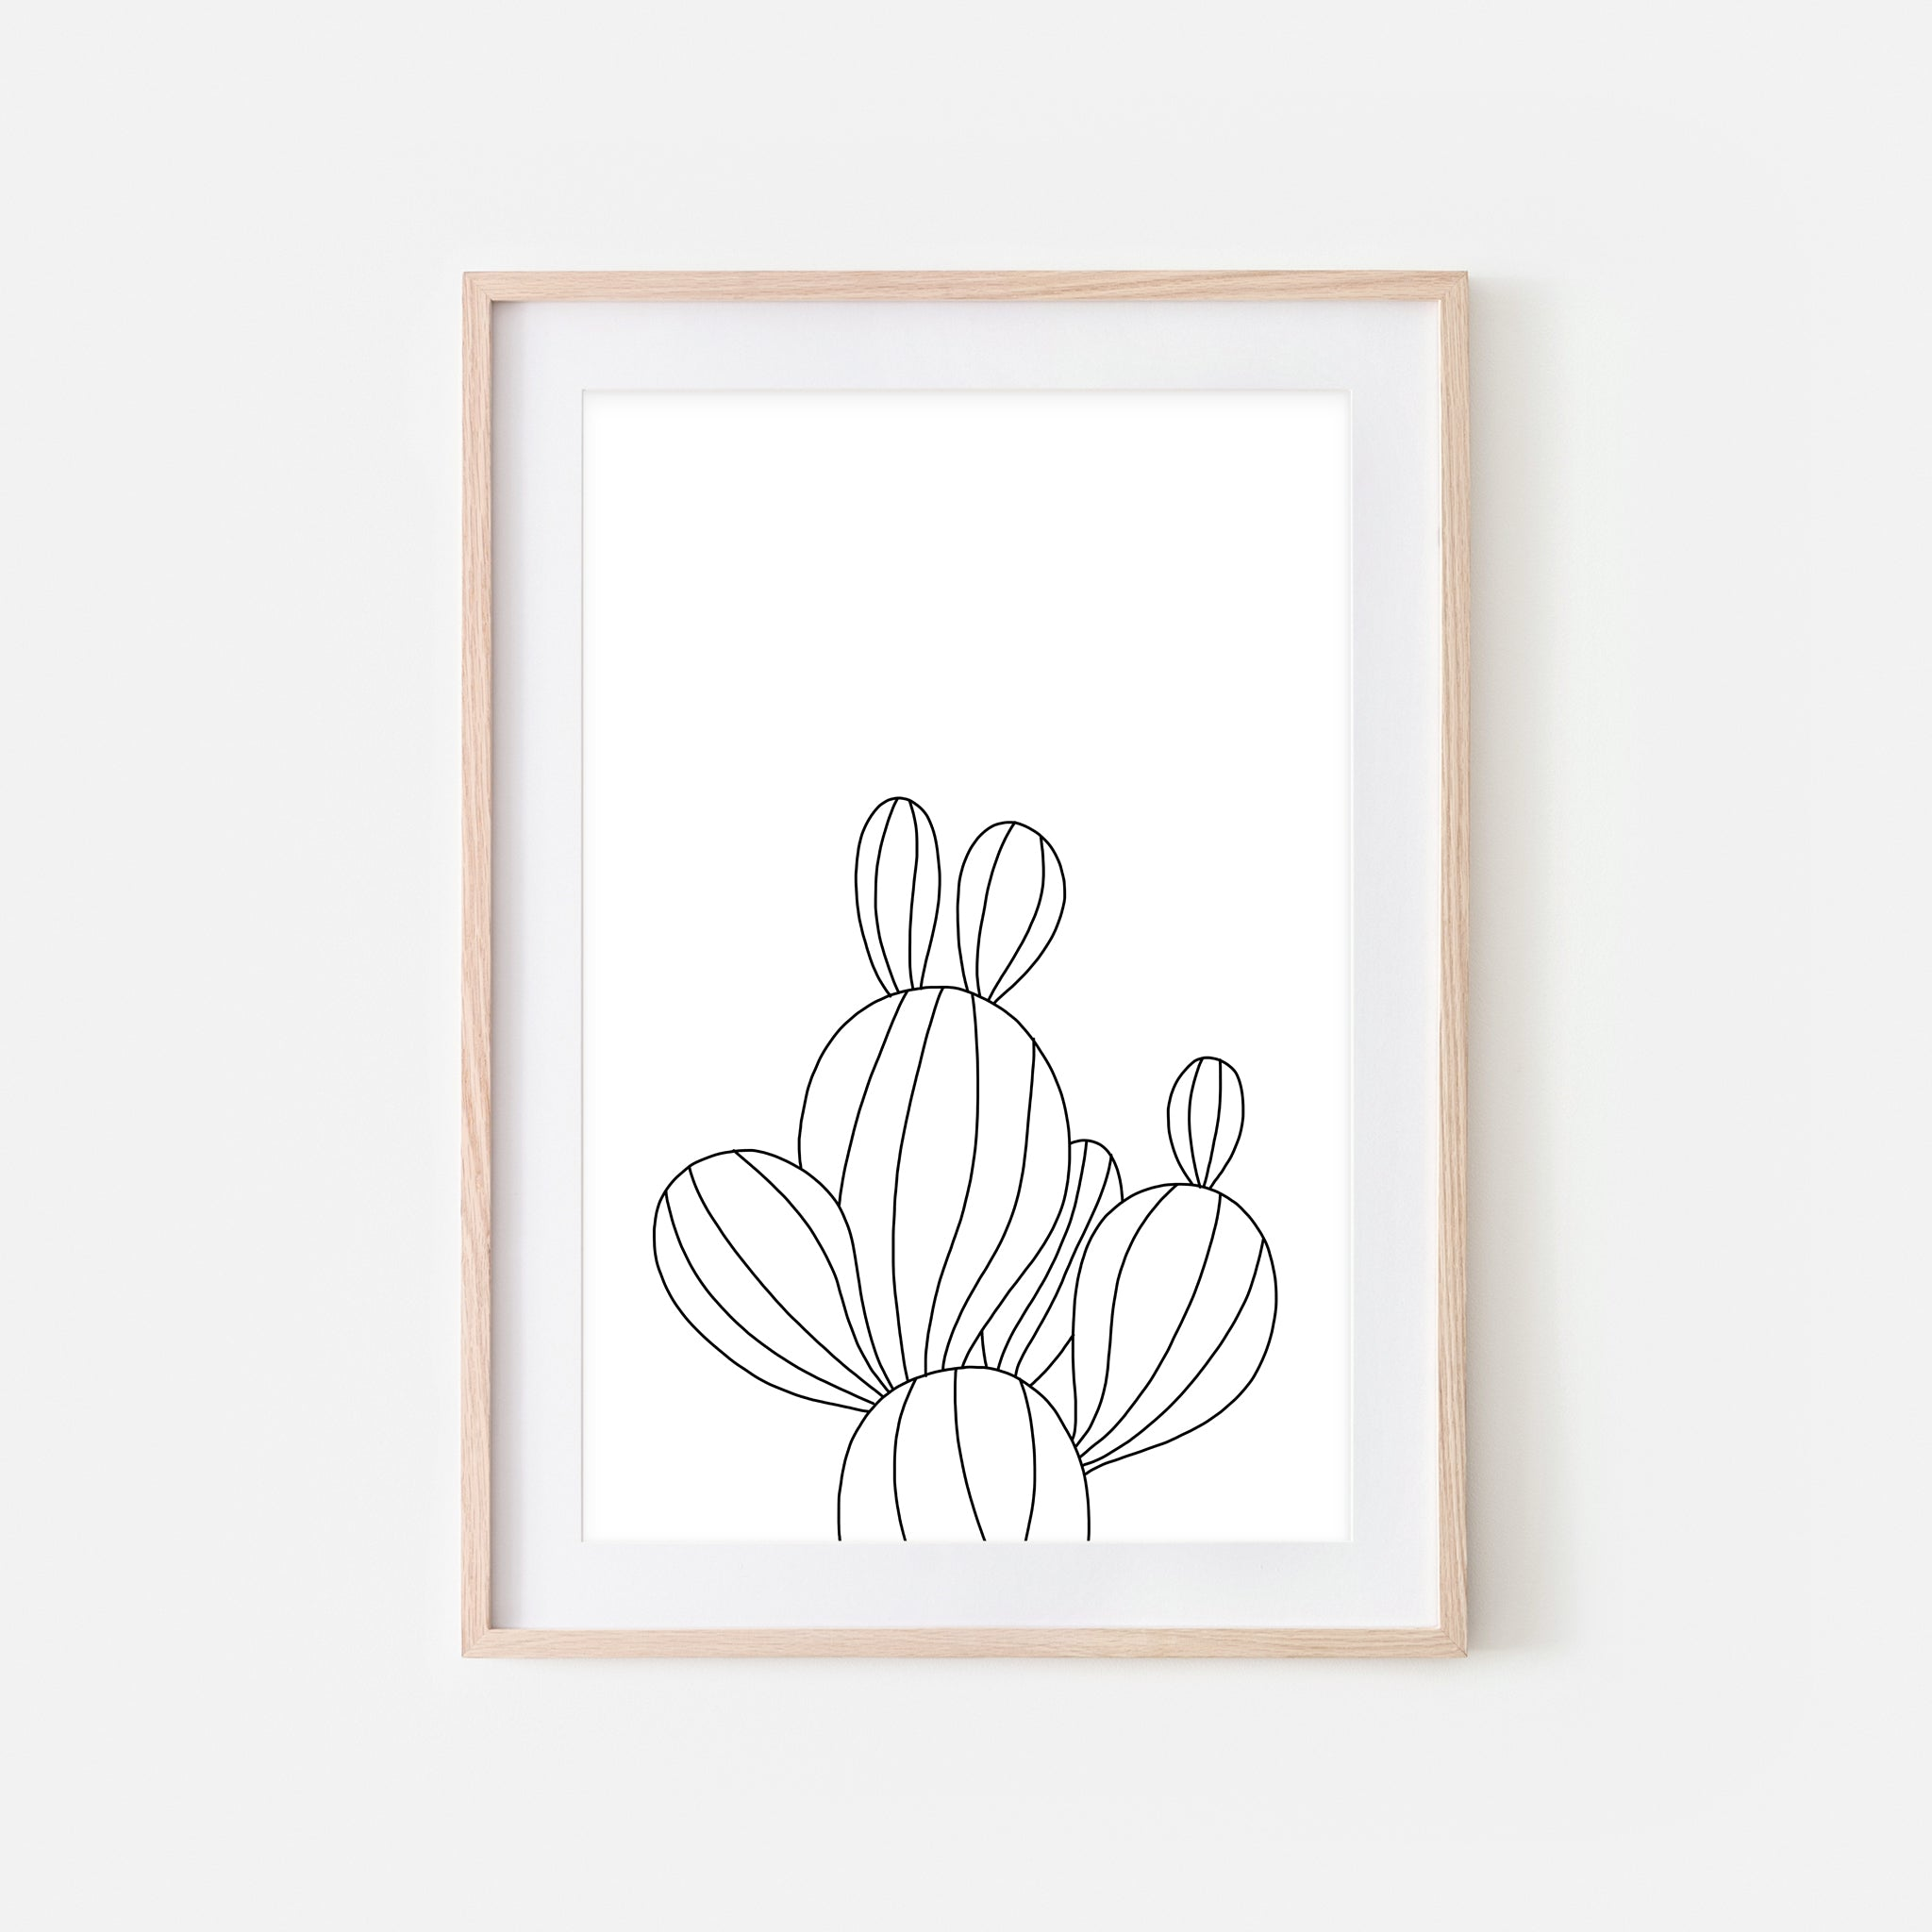 Botanical No. 14 Wall Art - Minimalist Cactus Line Drawing - Black and White Print, Poster or Printable Download